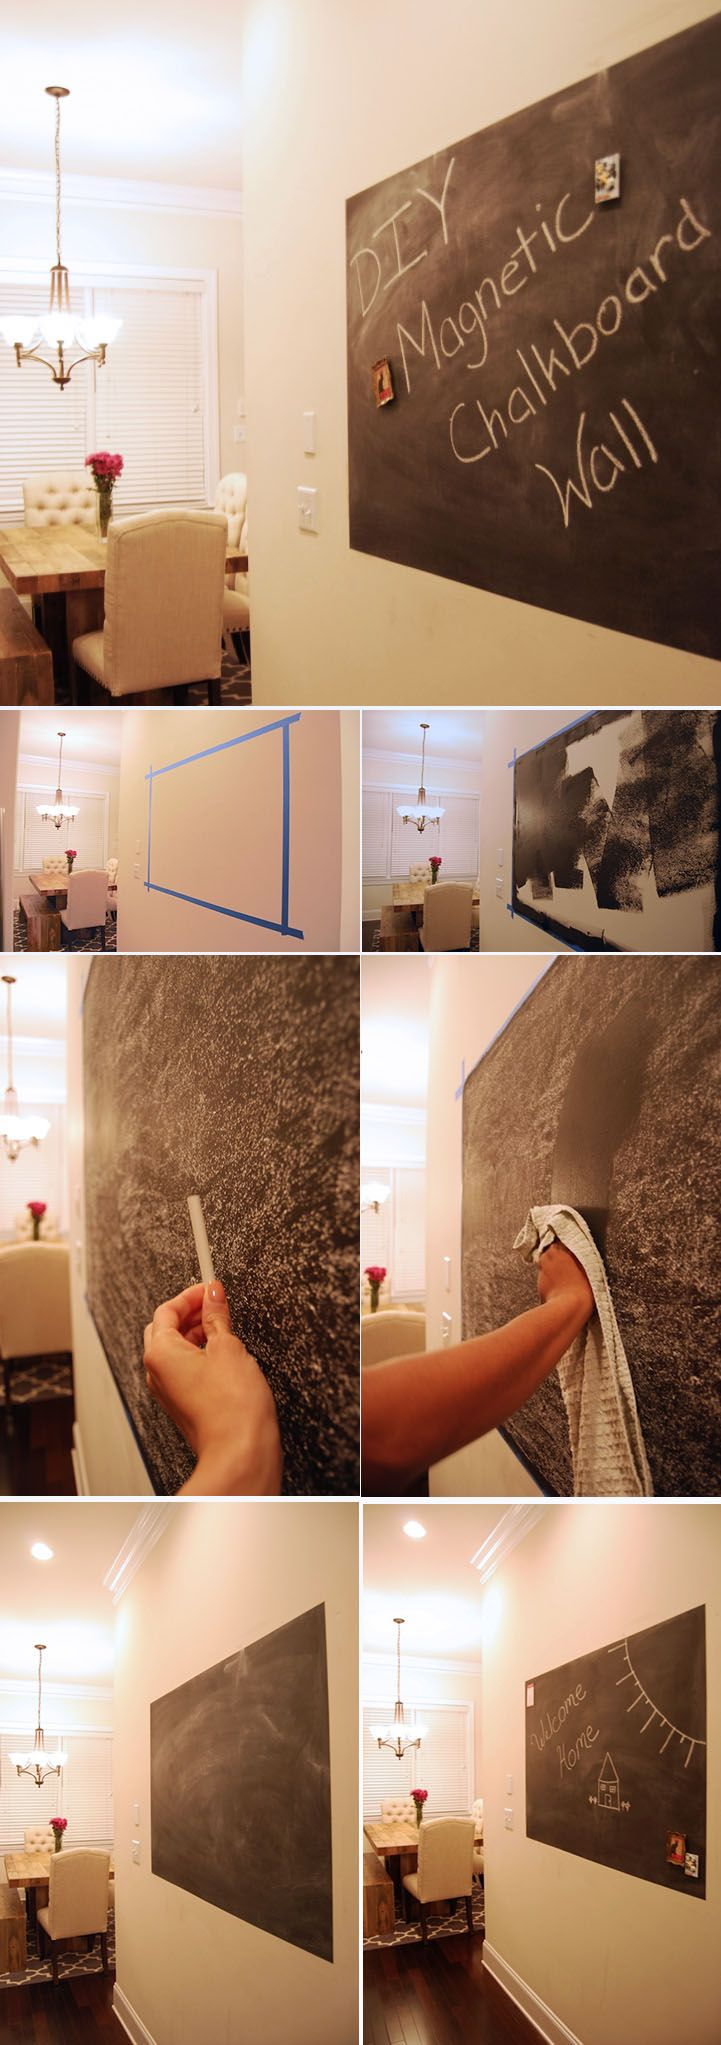 DIY Magnetic Chalkboard Wall | The Home Depot Community | DIY ...